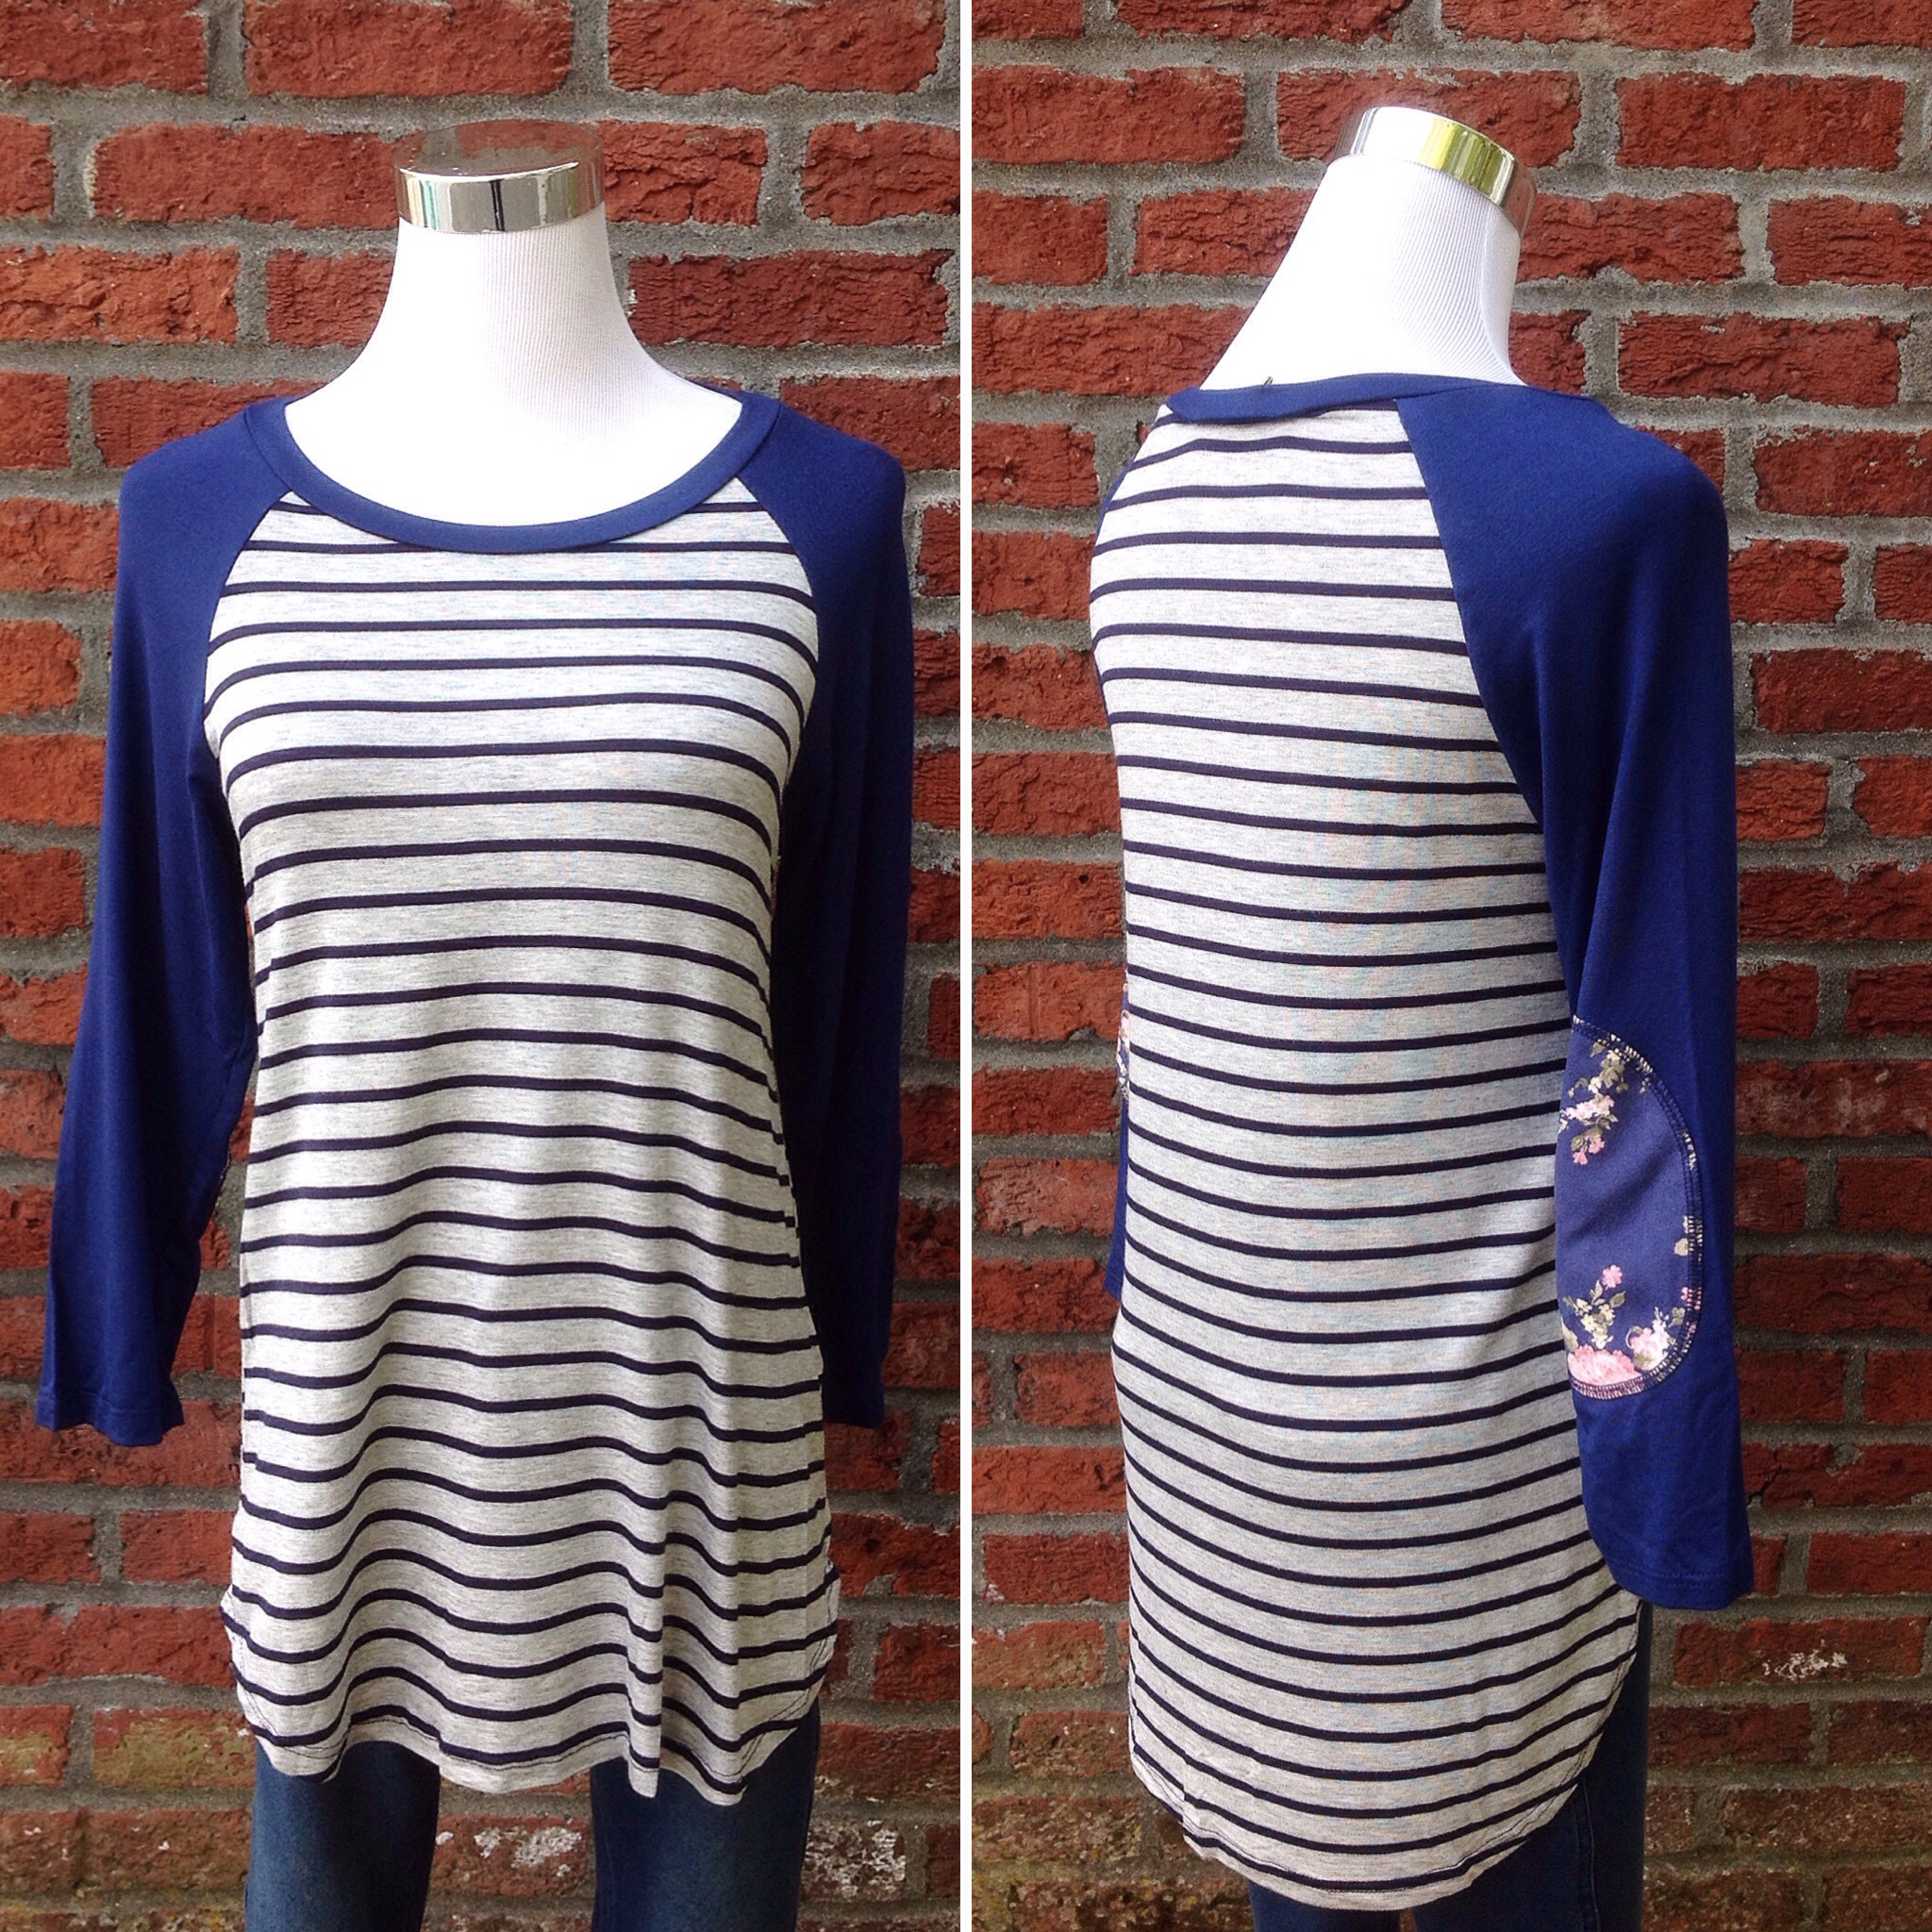 Grey and navy stripe baseball top with contrasting sleeves, $30